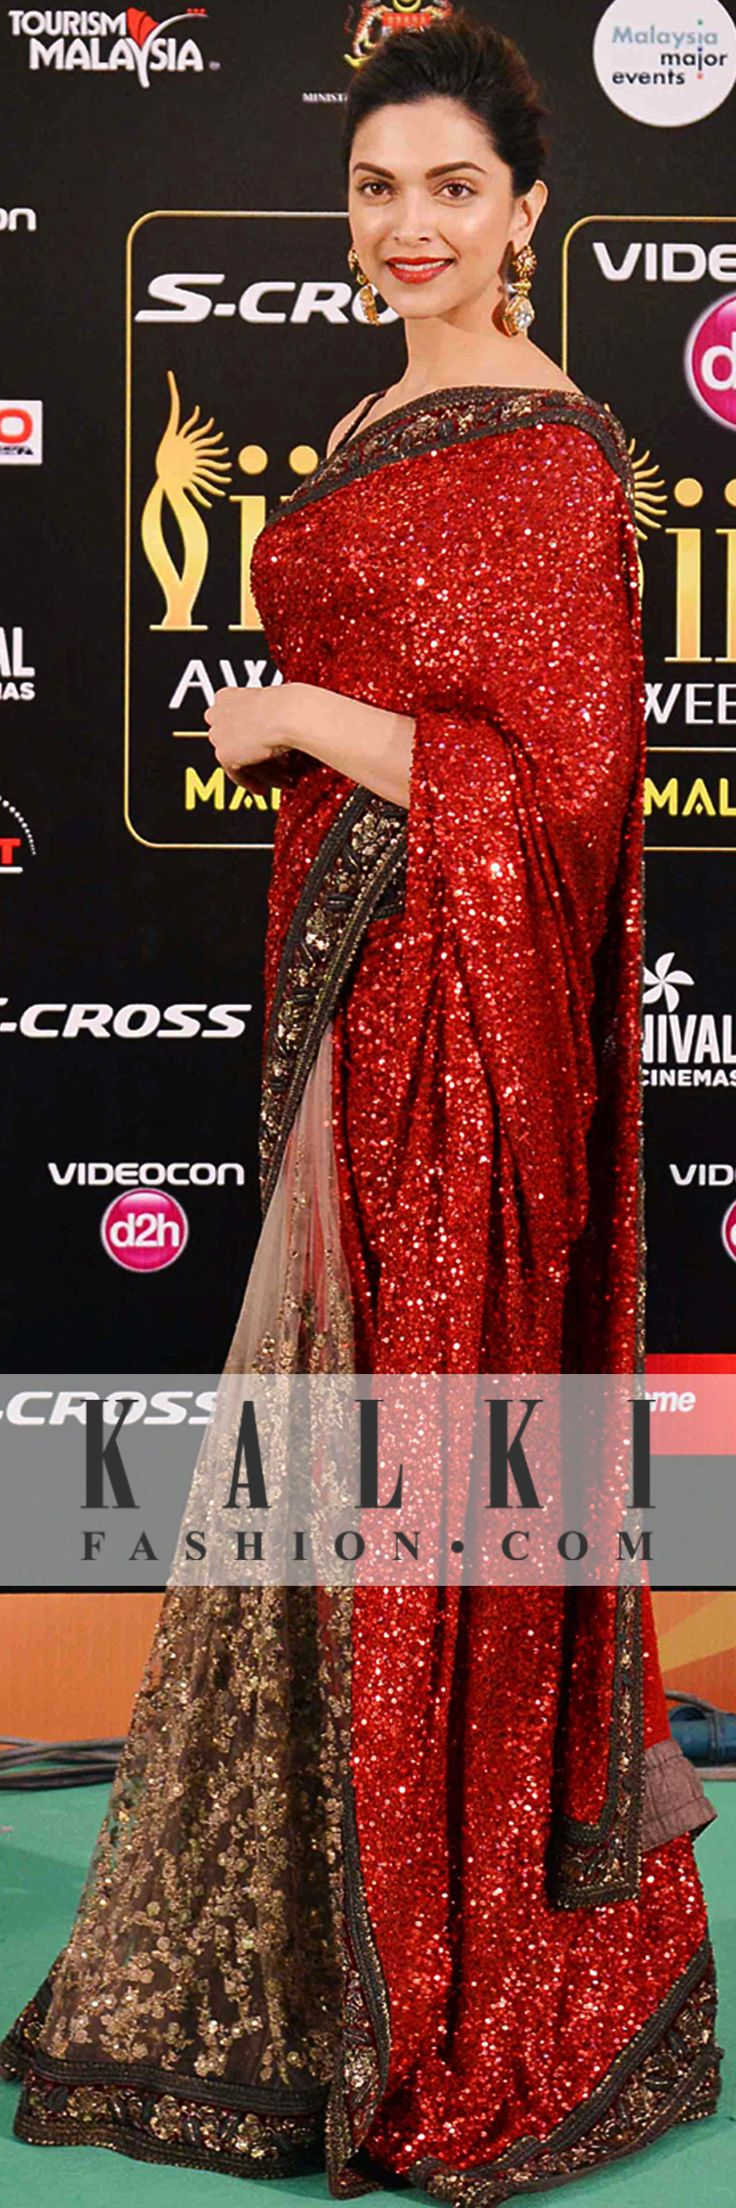 Deepika Padukone: The tall tower of Bollywood was seen dazzle in a red and golden shimmer saree. She carries herself and everything she wears with grace and confidence